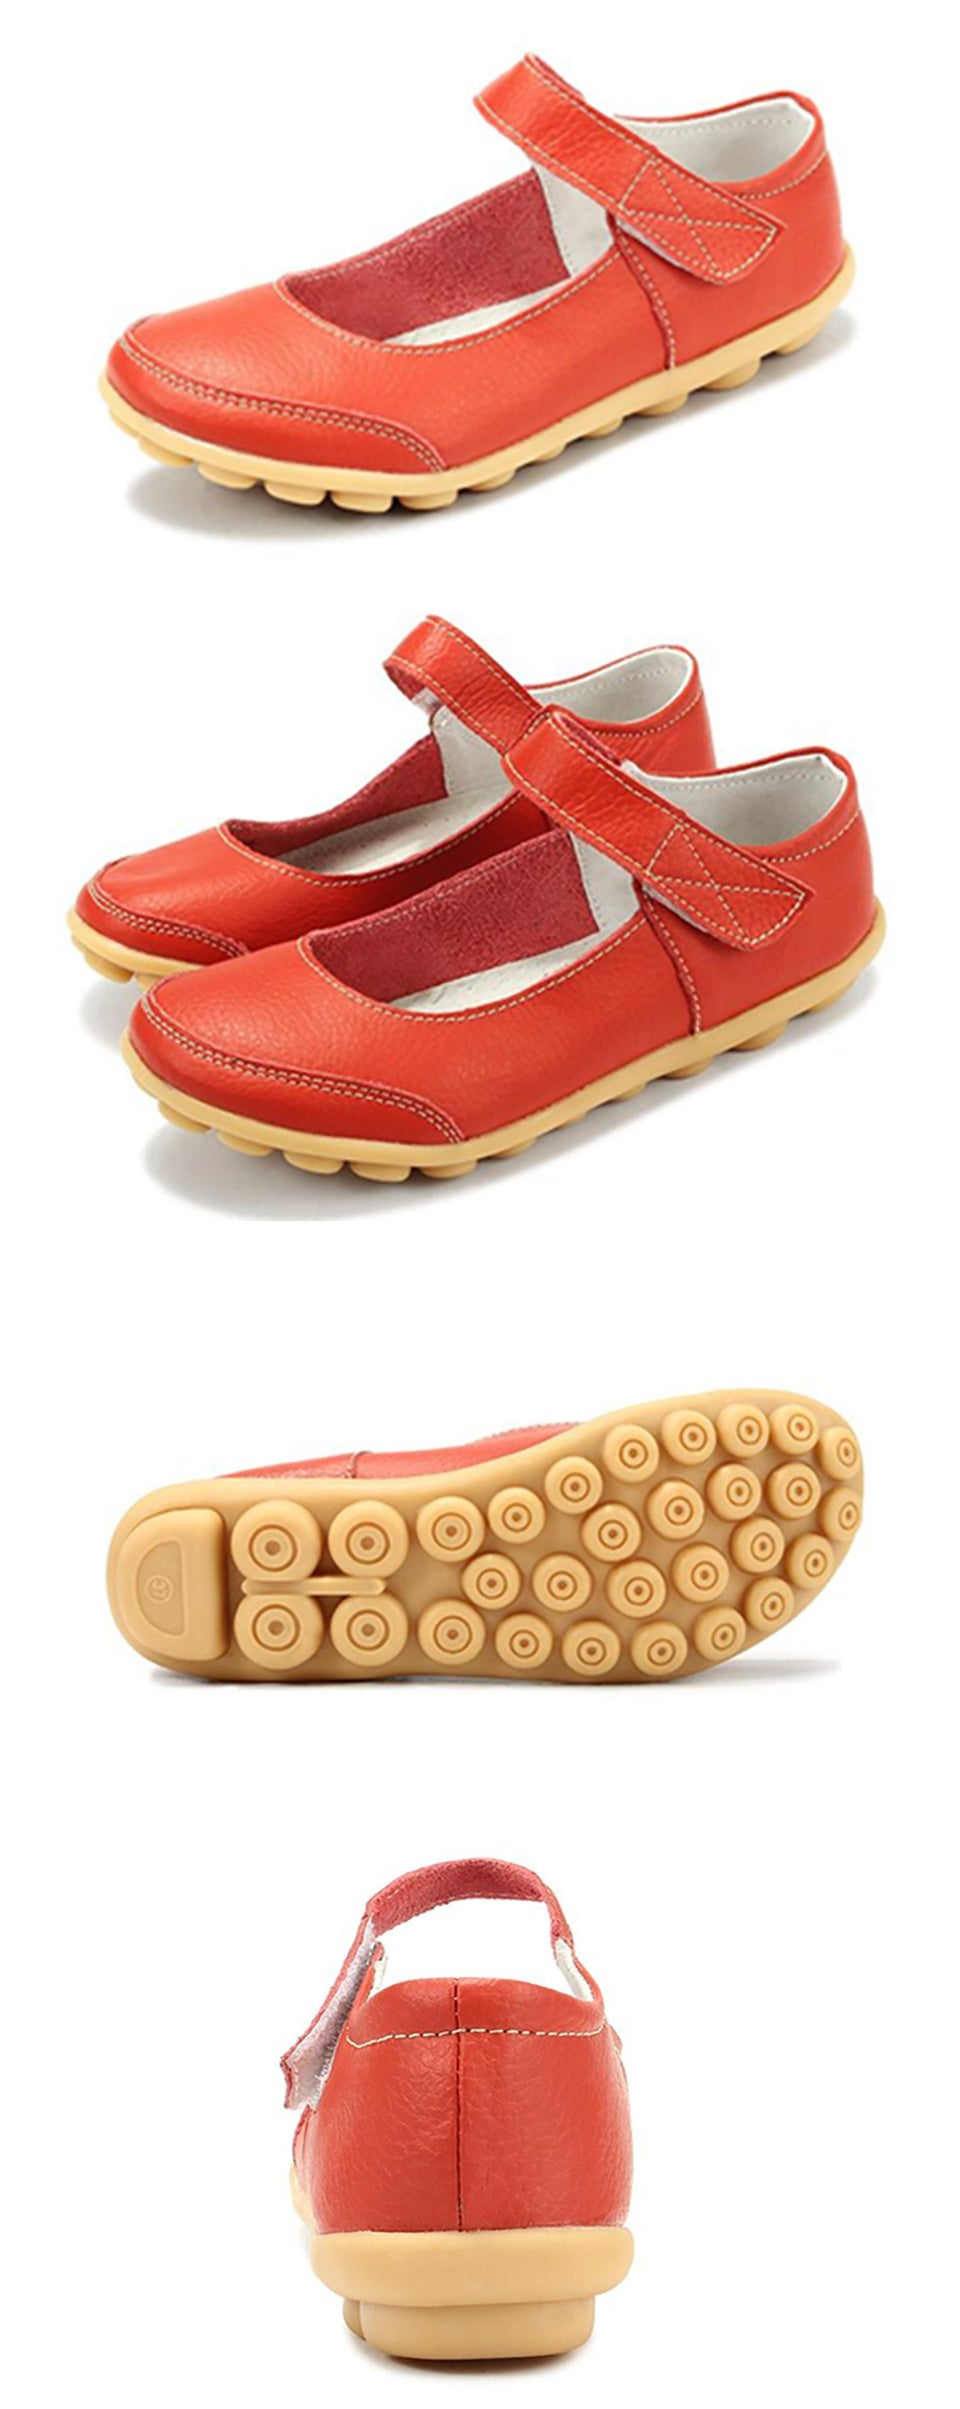 red mary jane nodule shoes with the velcro securing strap